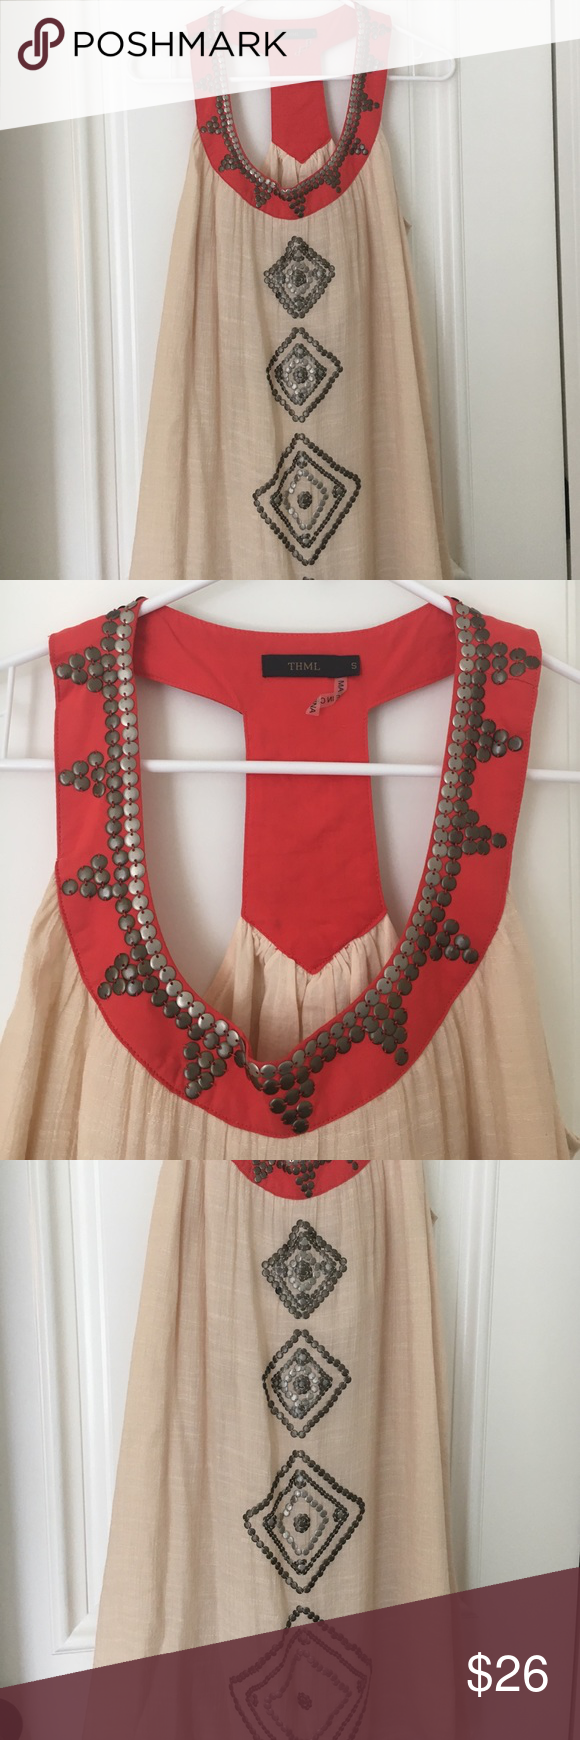 Halter dress THML Metal studded THML dress cream linen color with coral trim 55% cotton 45% polyester THML Dresses